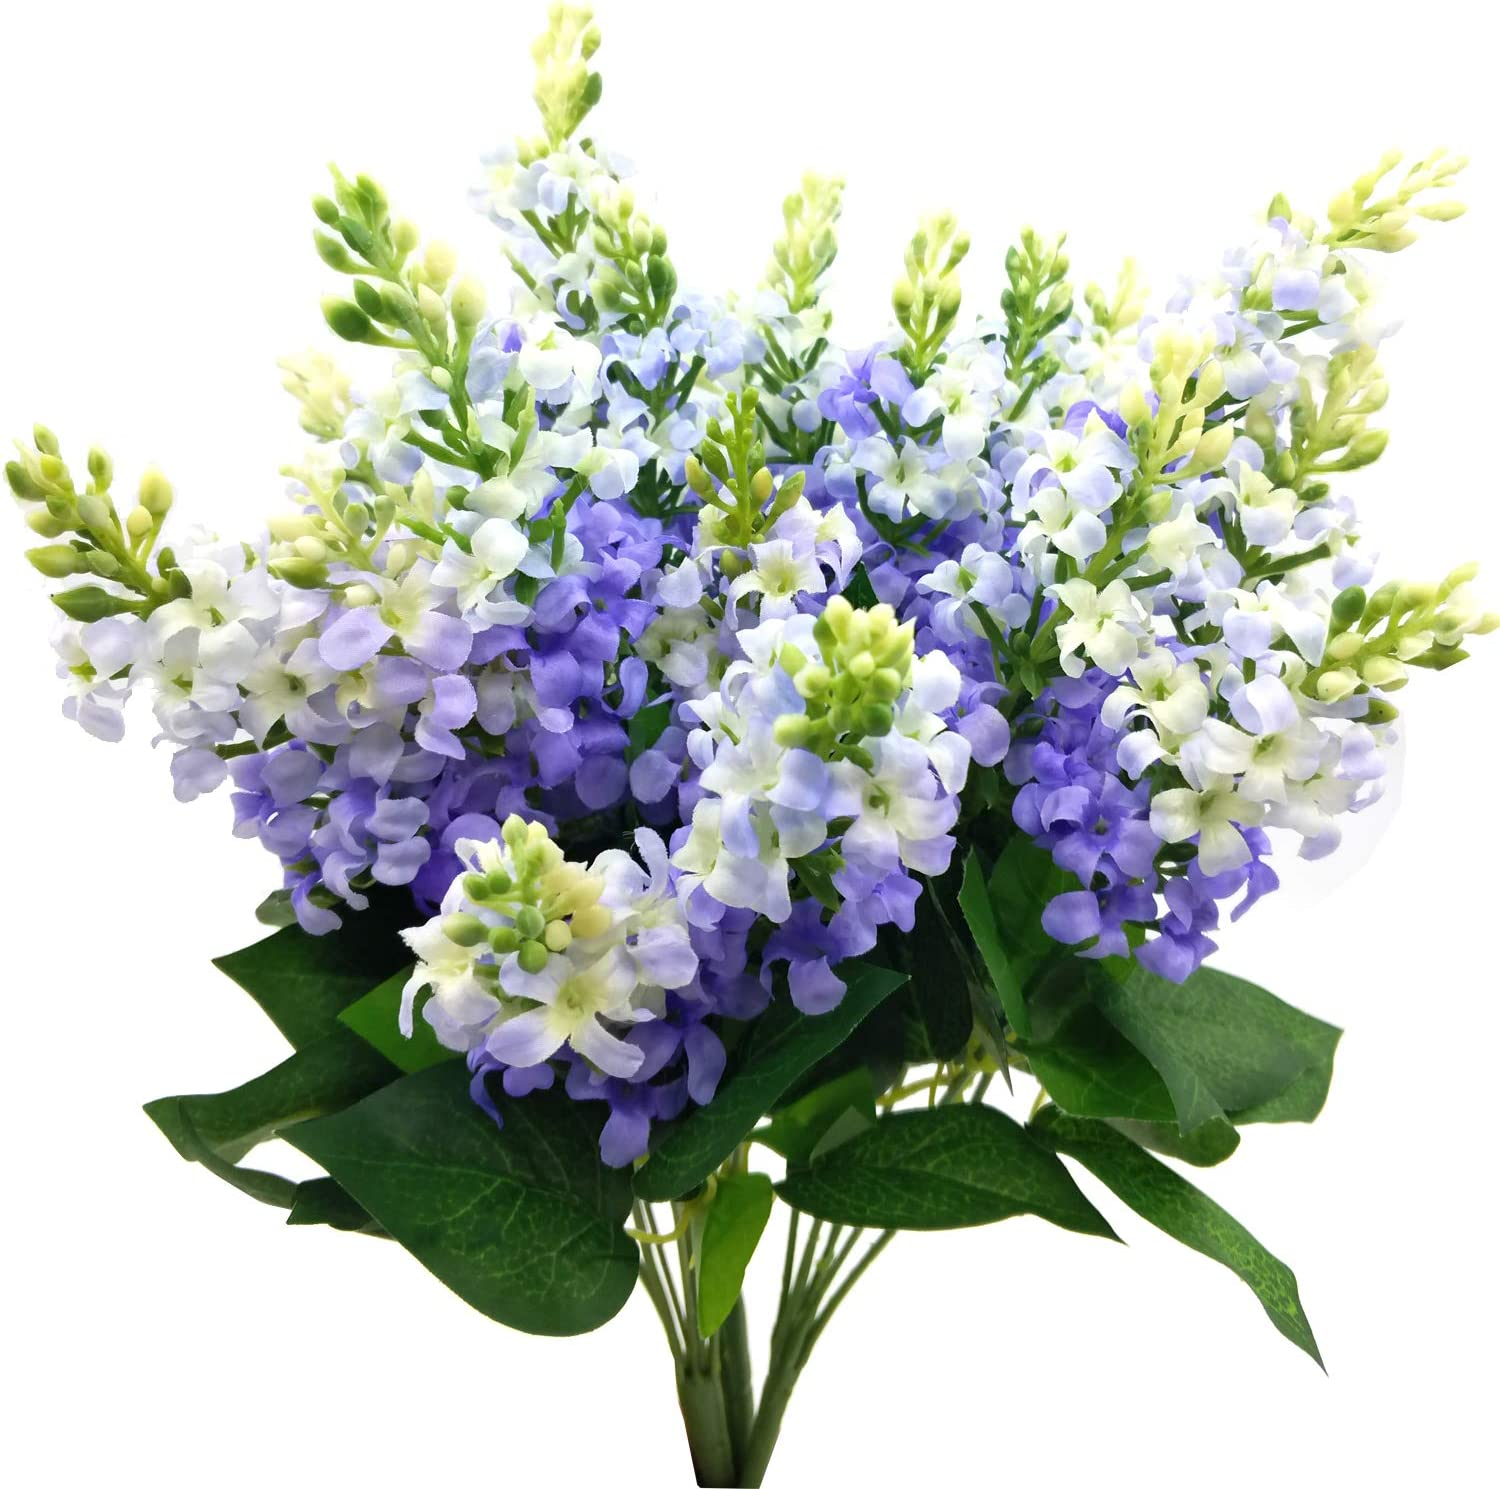 Guagb Artificial Fake Flowers Silk Plastic Plant Arrangement for Home Indoor Outdoor Garden Wedding Table Vase Decorations Faux Snapdragon Flower,3 Bouquets (Lilac)